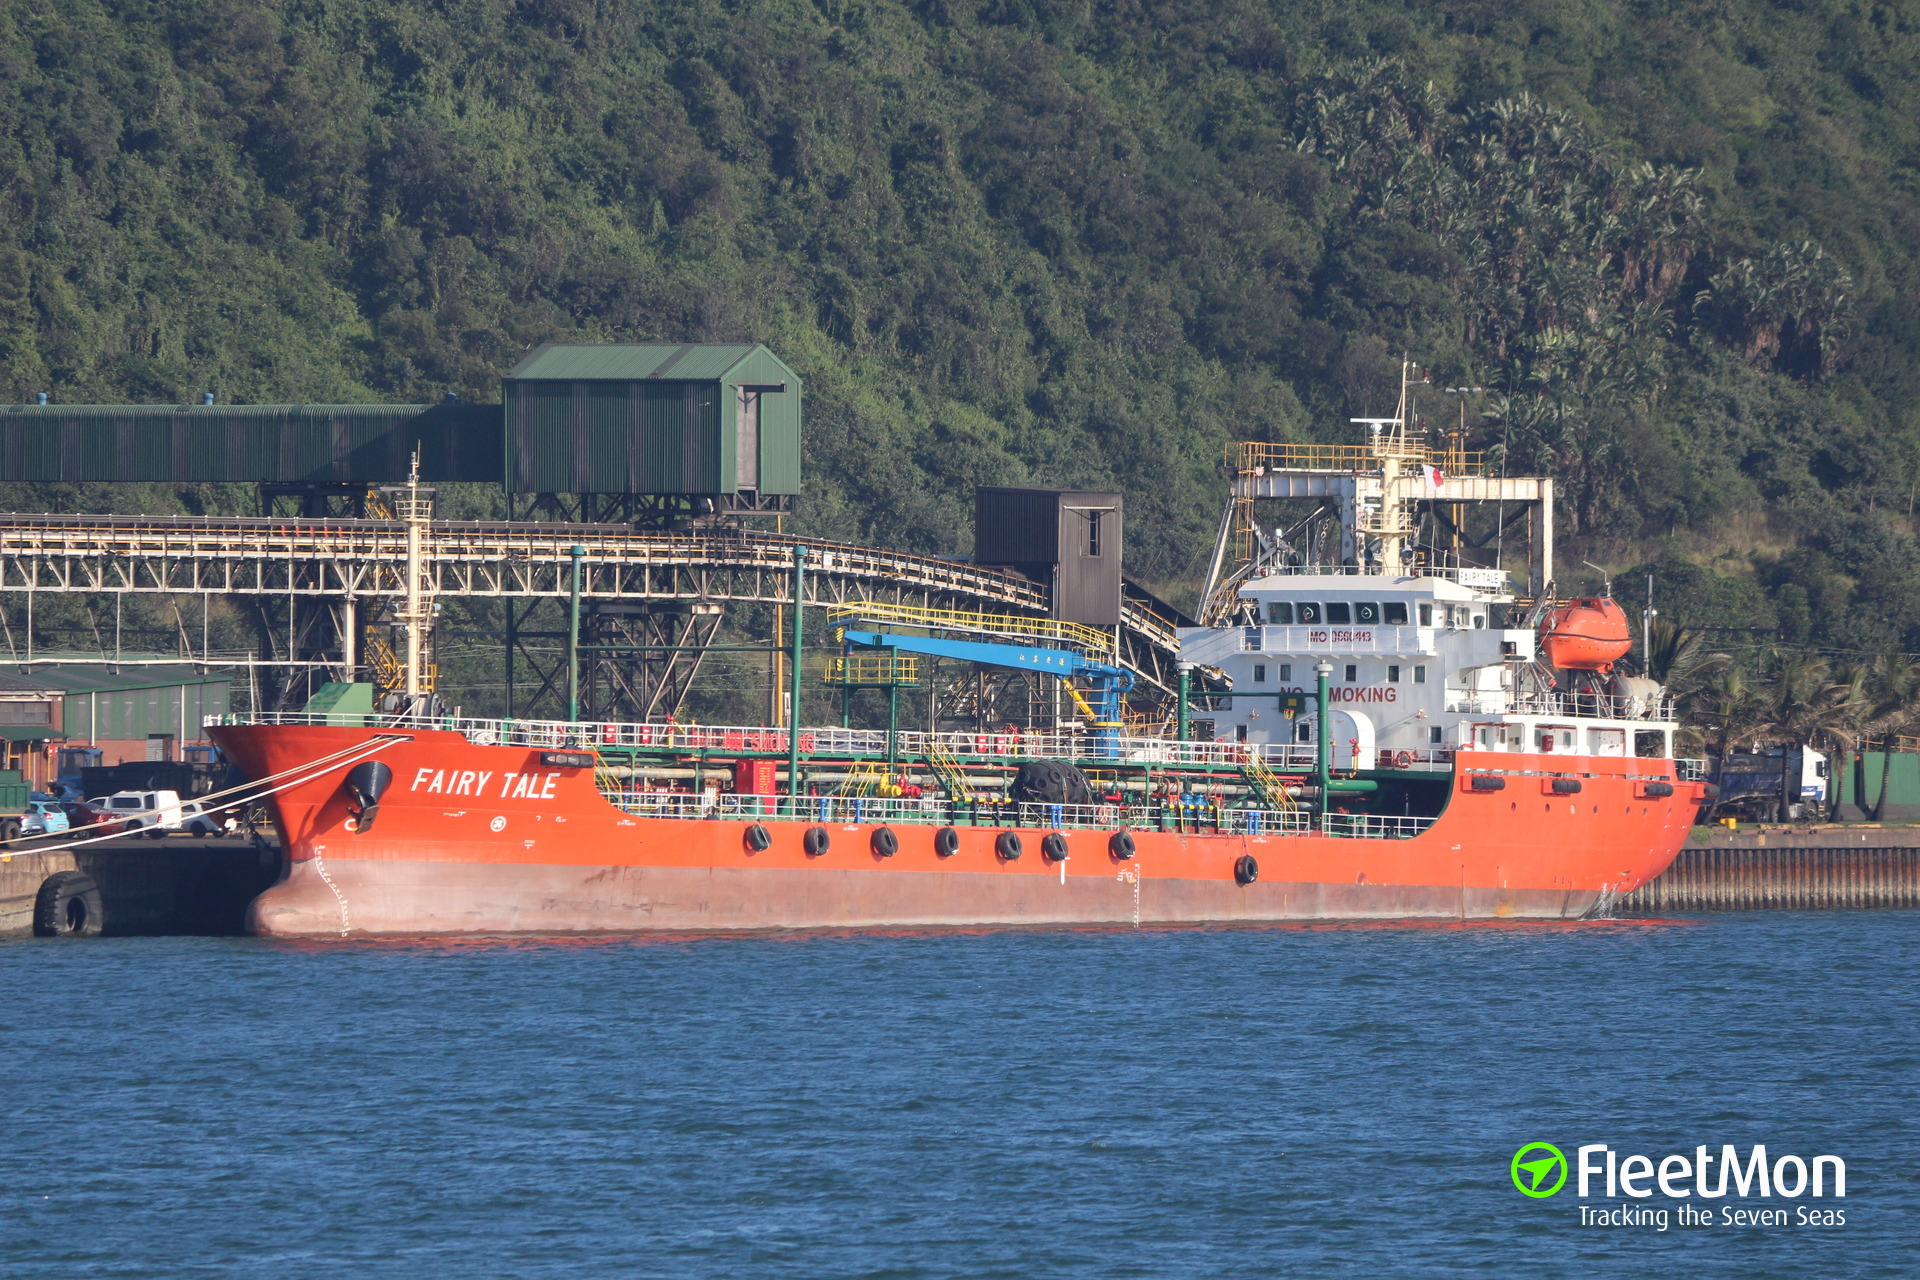 Product tanker FAIRY TALE arrested in Malaysian waters